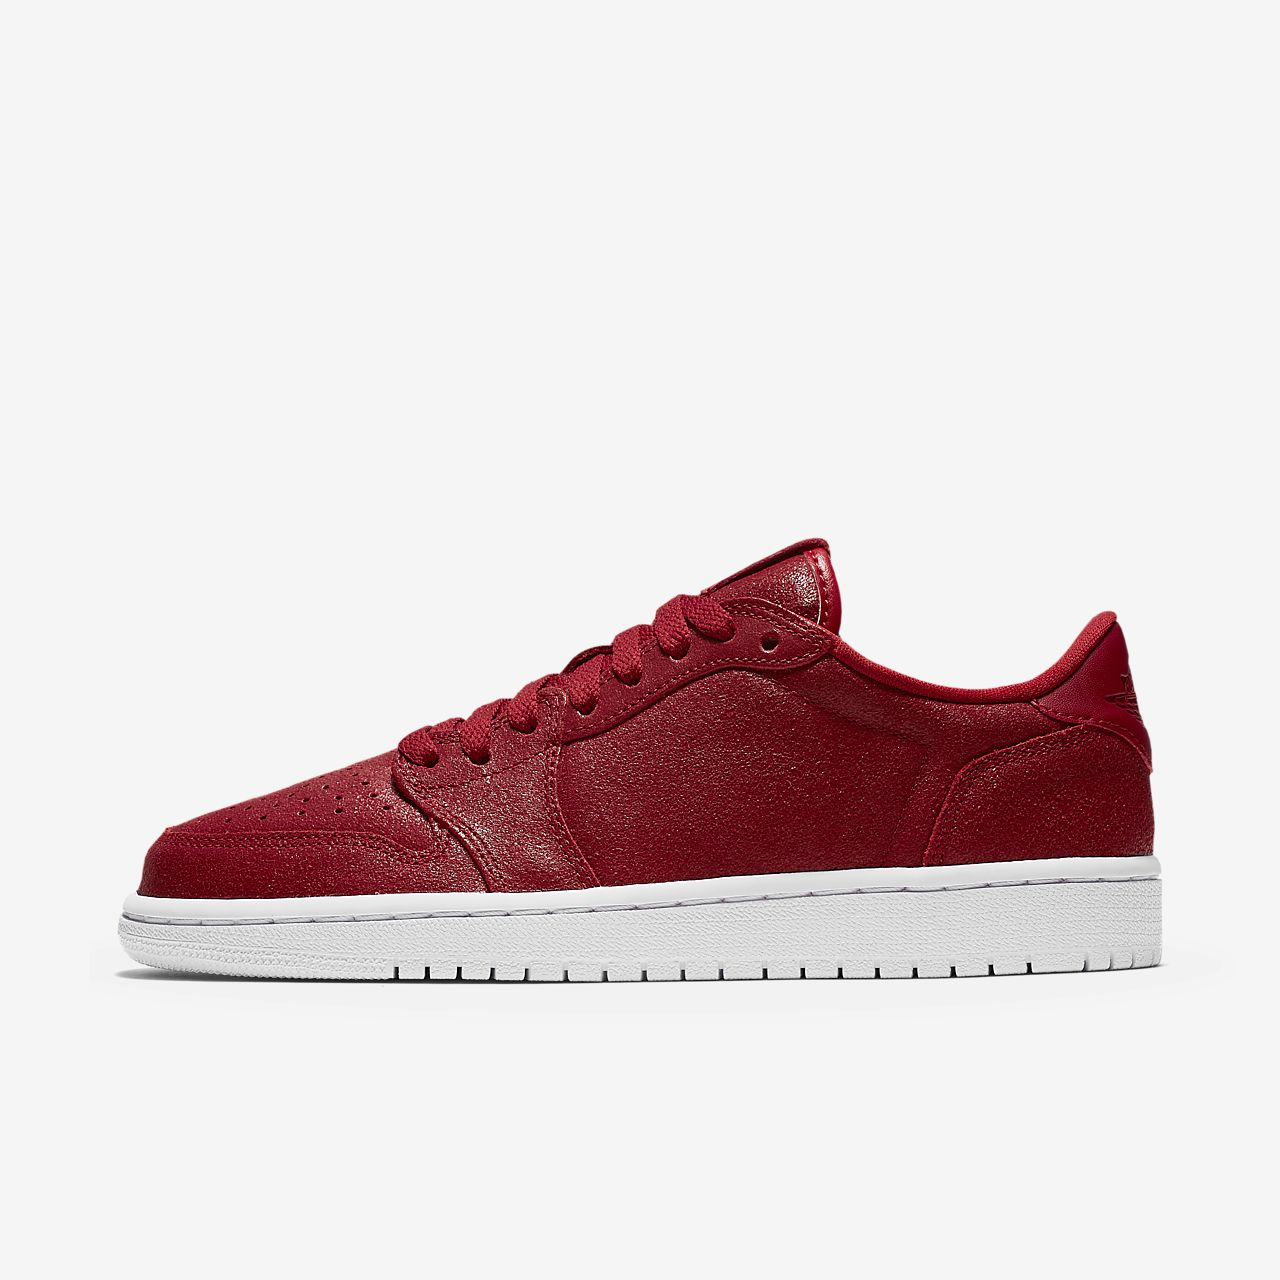 246cde8101c Air Jordan 1 Retro Low NS Women s Shoe. Nike.com BG